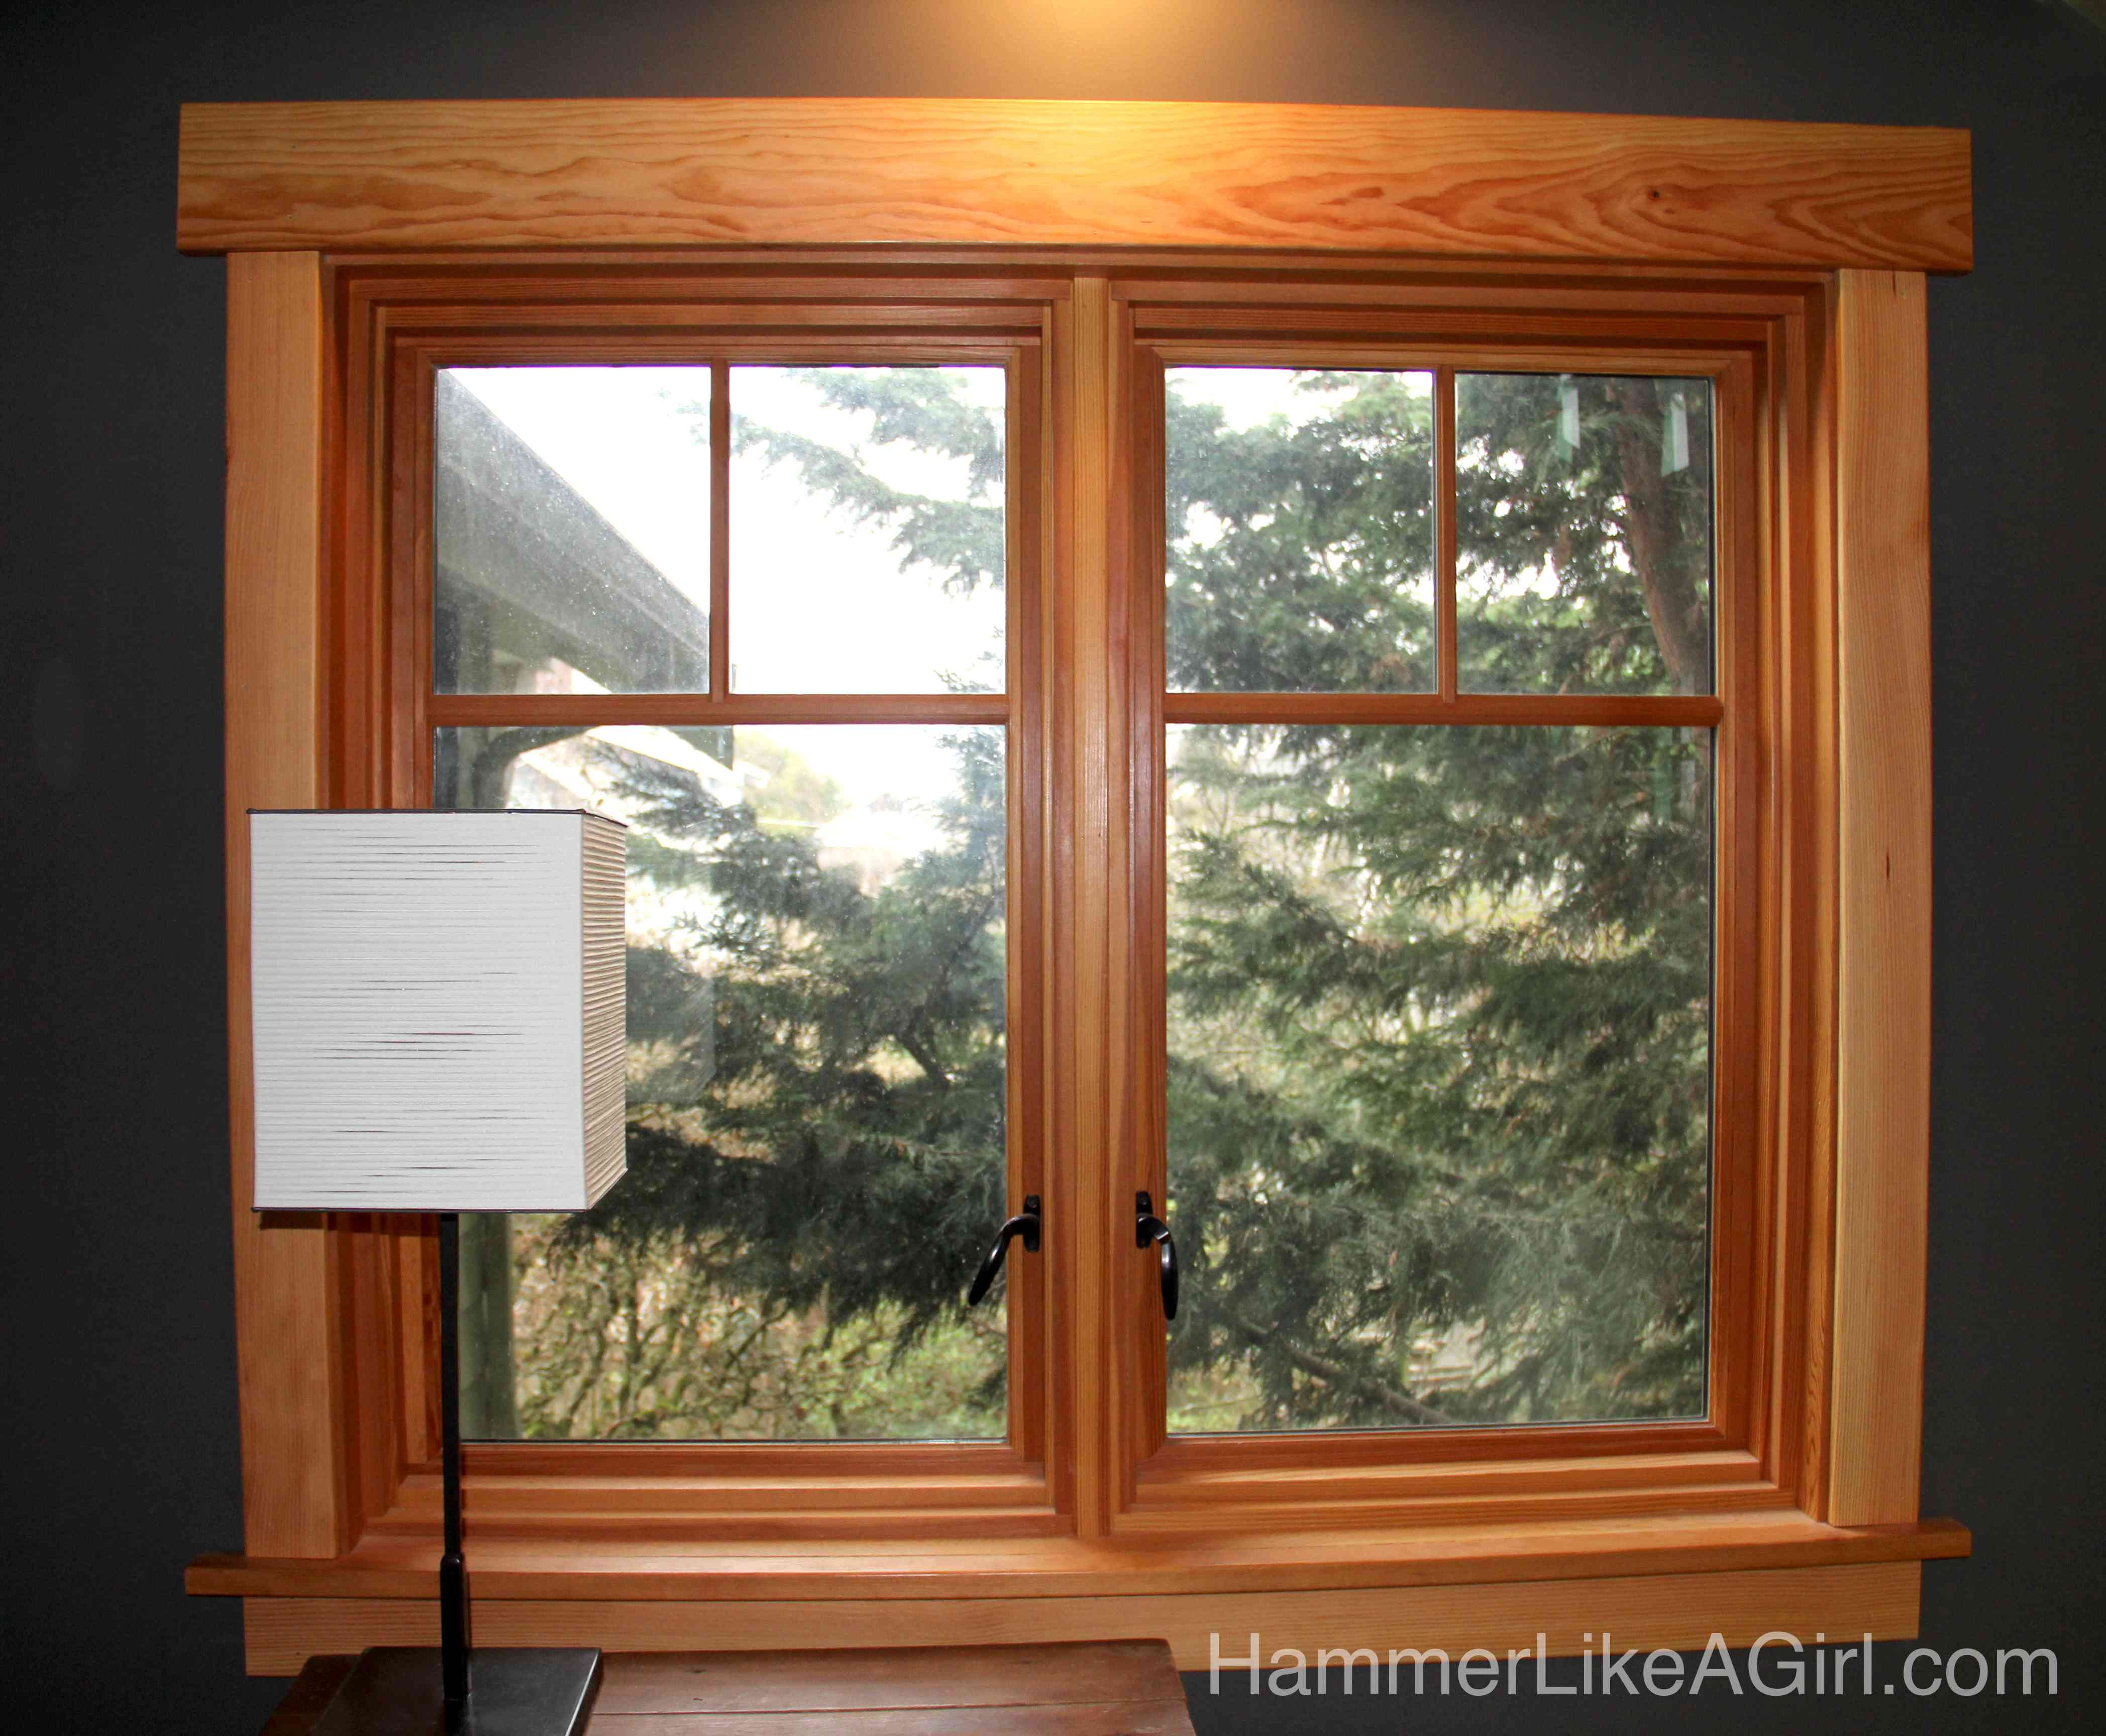 Windowtrim library2 hammer like a girl - Craftsman style window trim interior ...